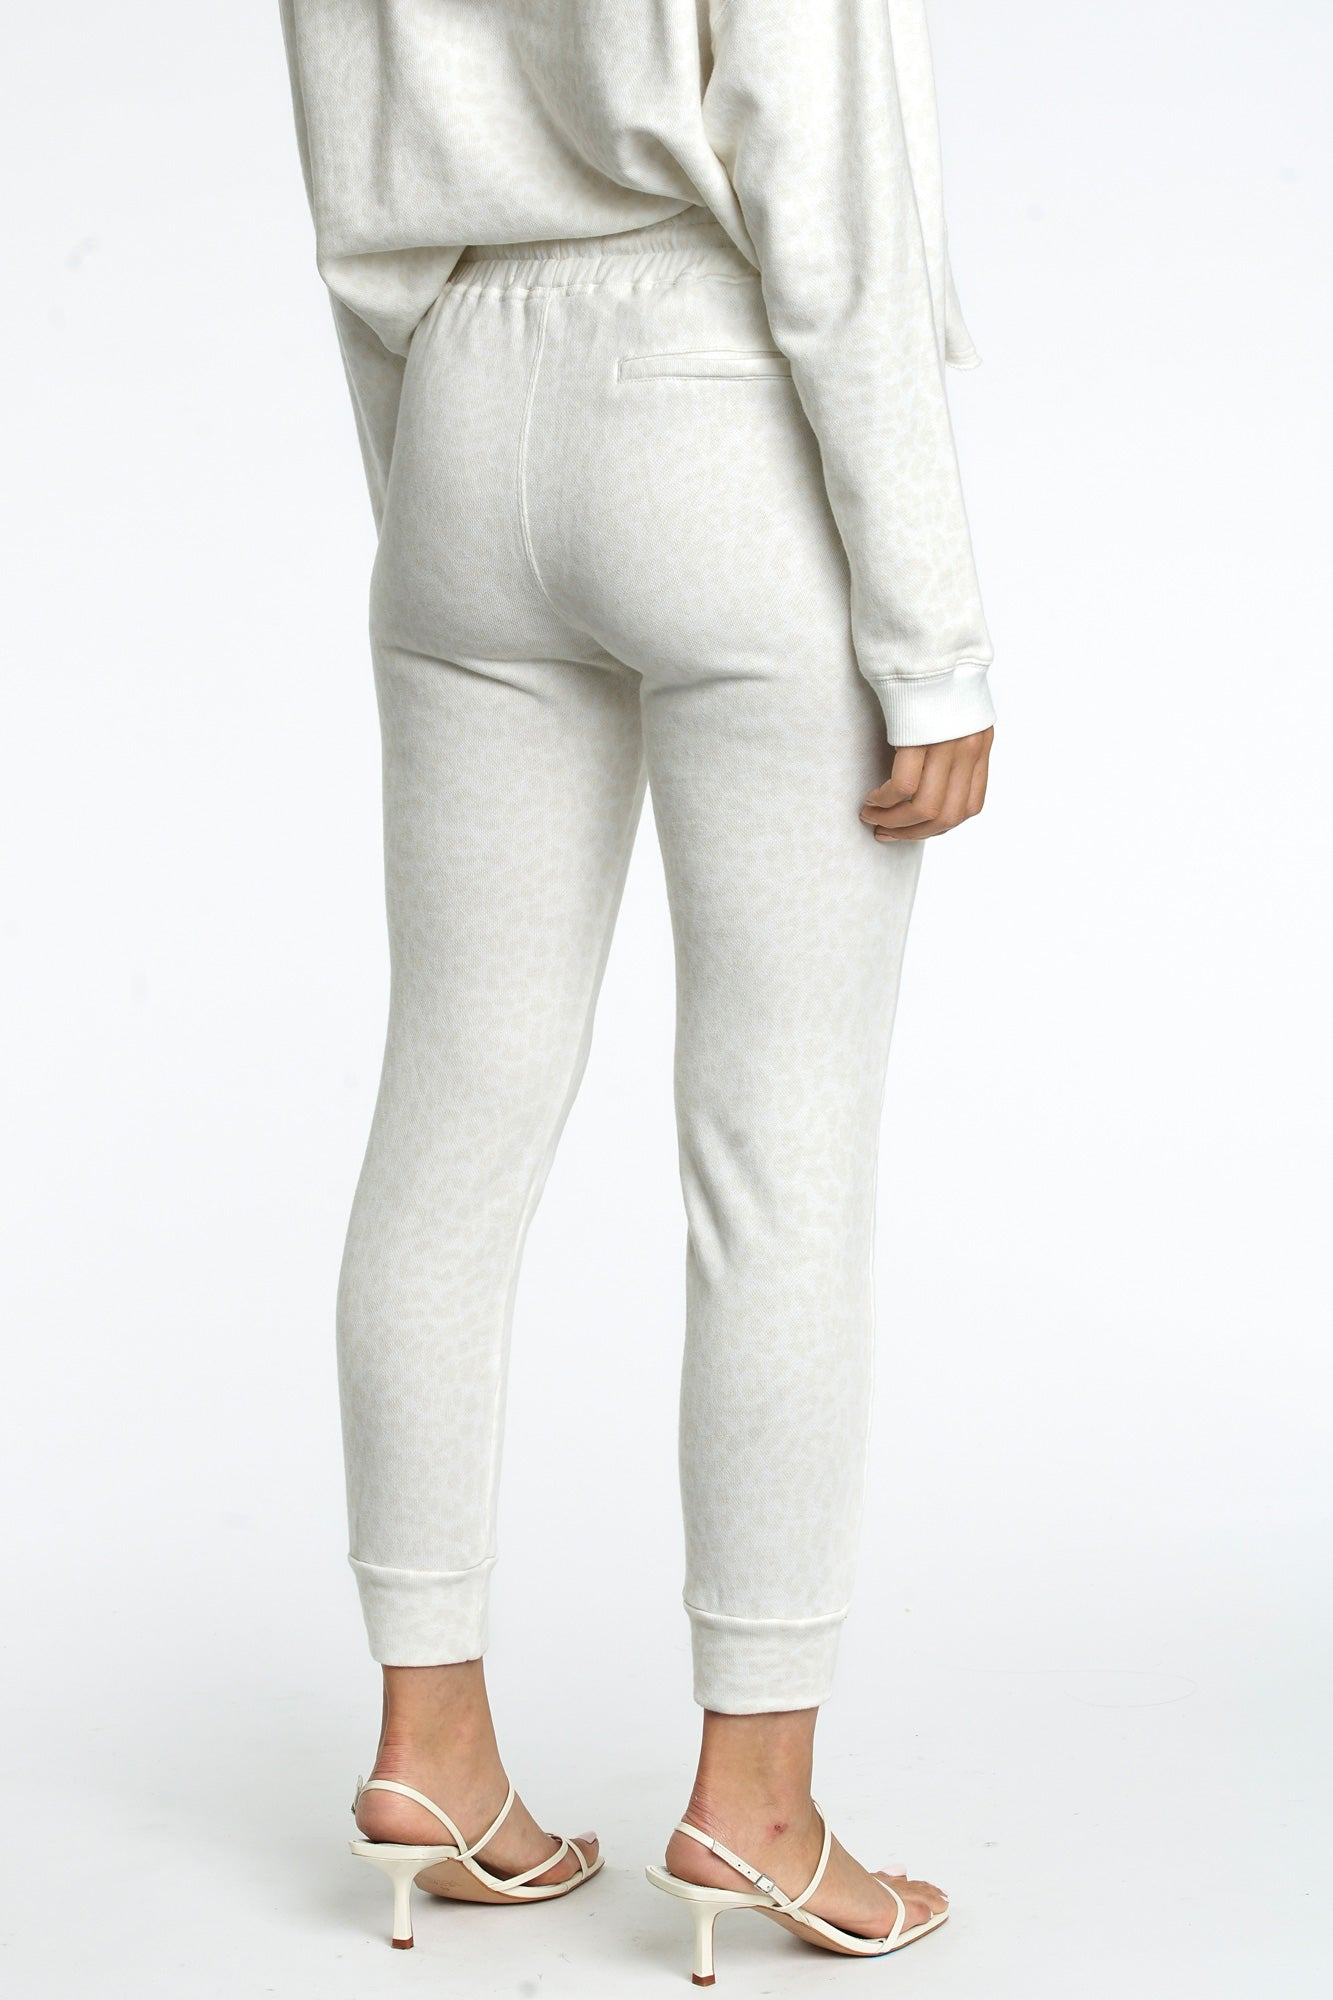 Alessa Slim Straight Leg Sweatpant - Wild Cat